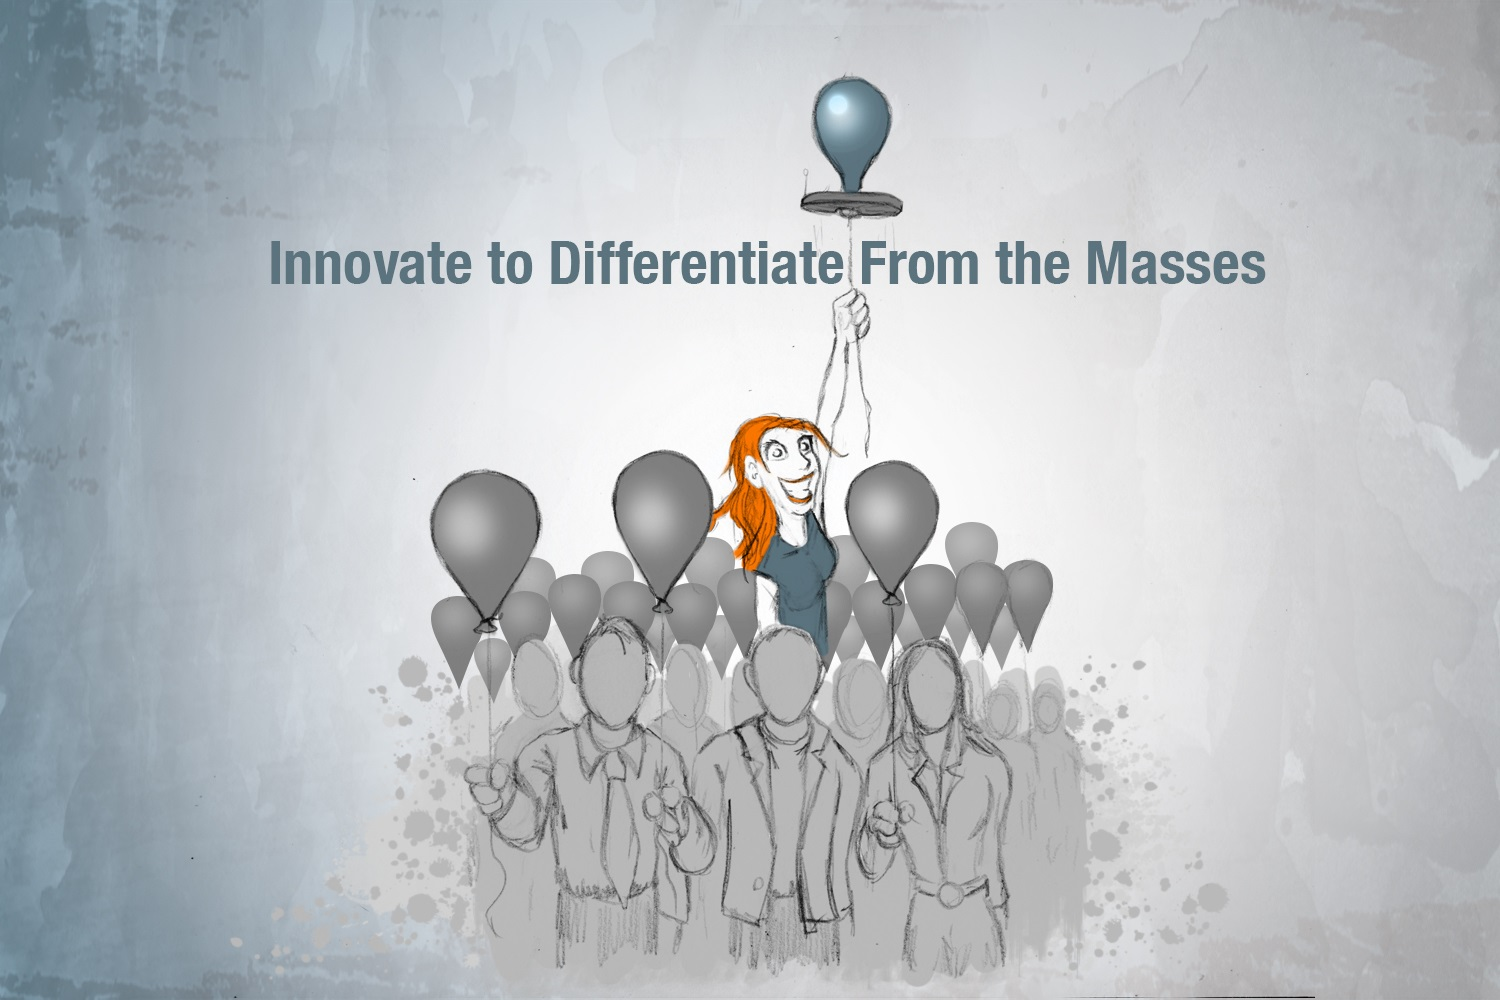 Innovate to Differentiate from the Masses